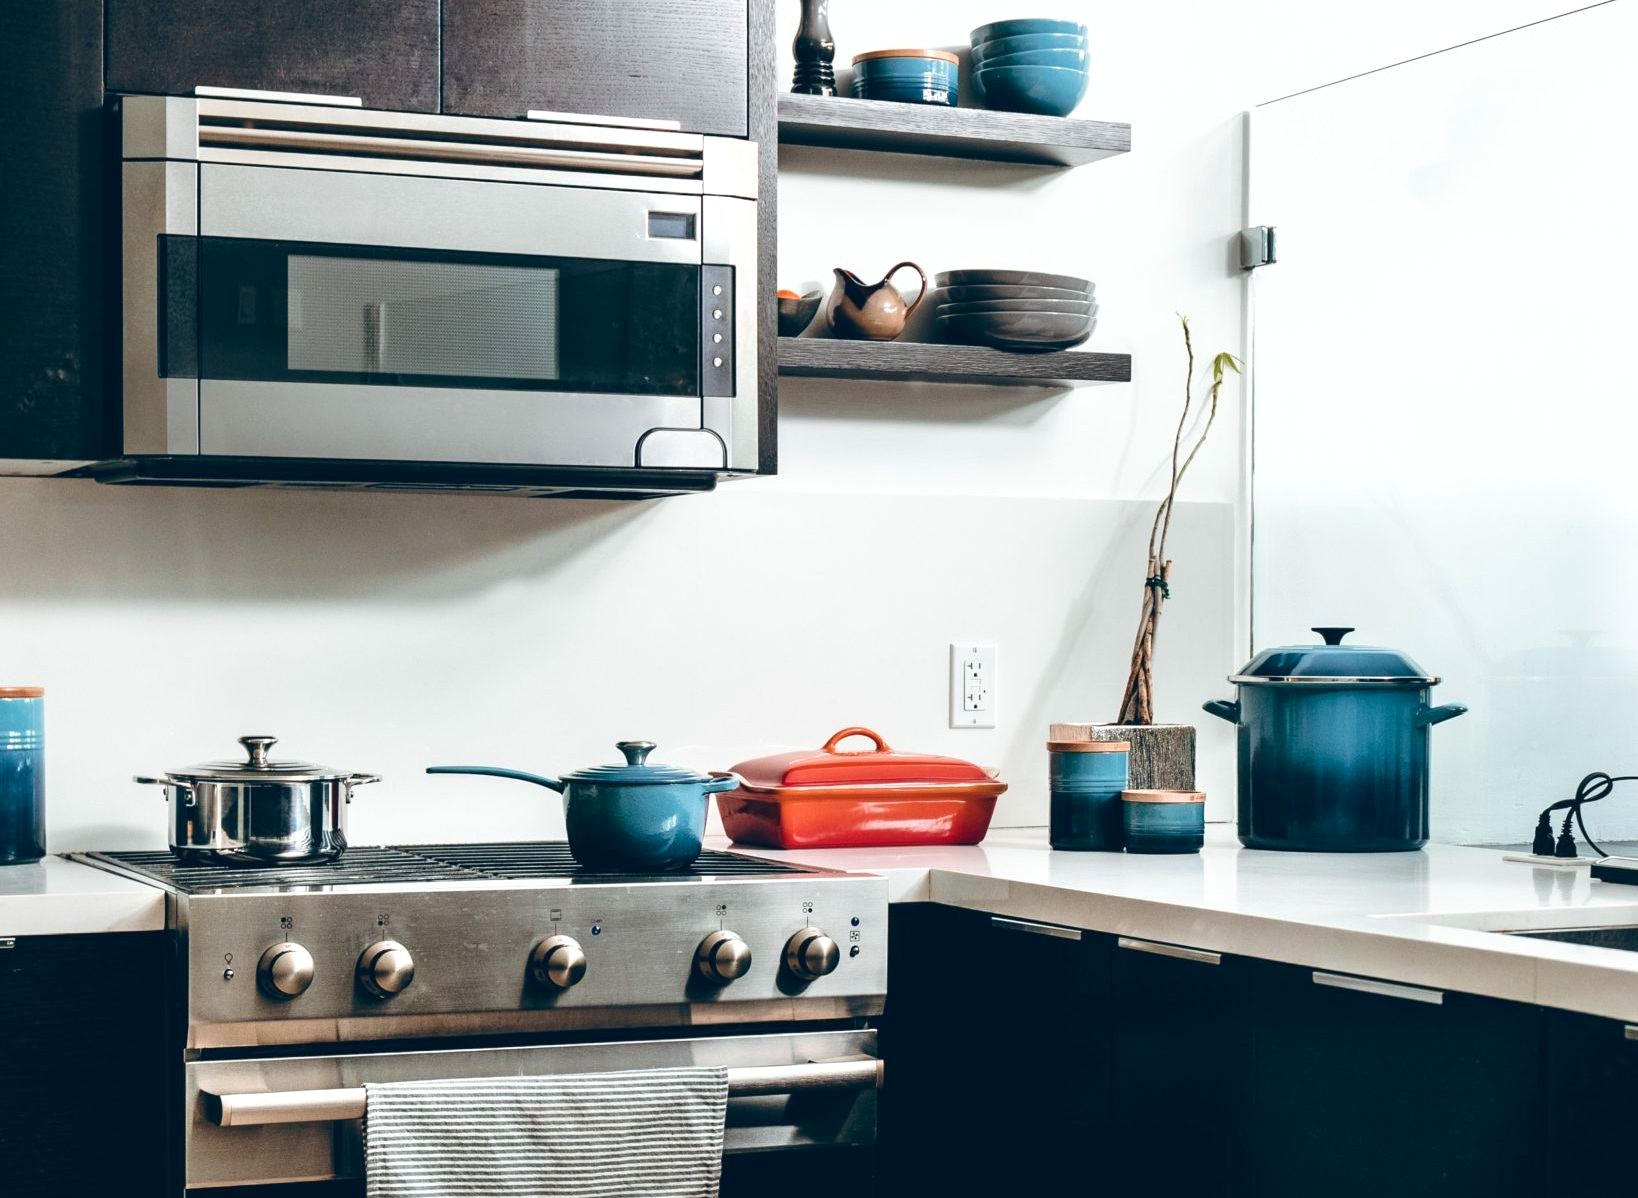 Fire Safety In The Kitchen Ads Security